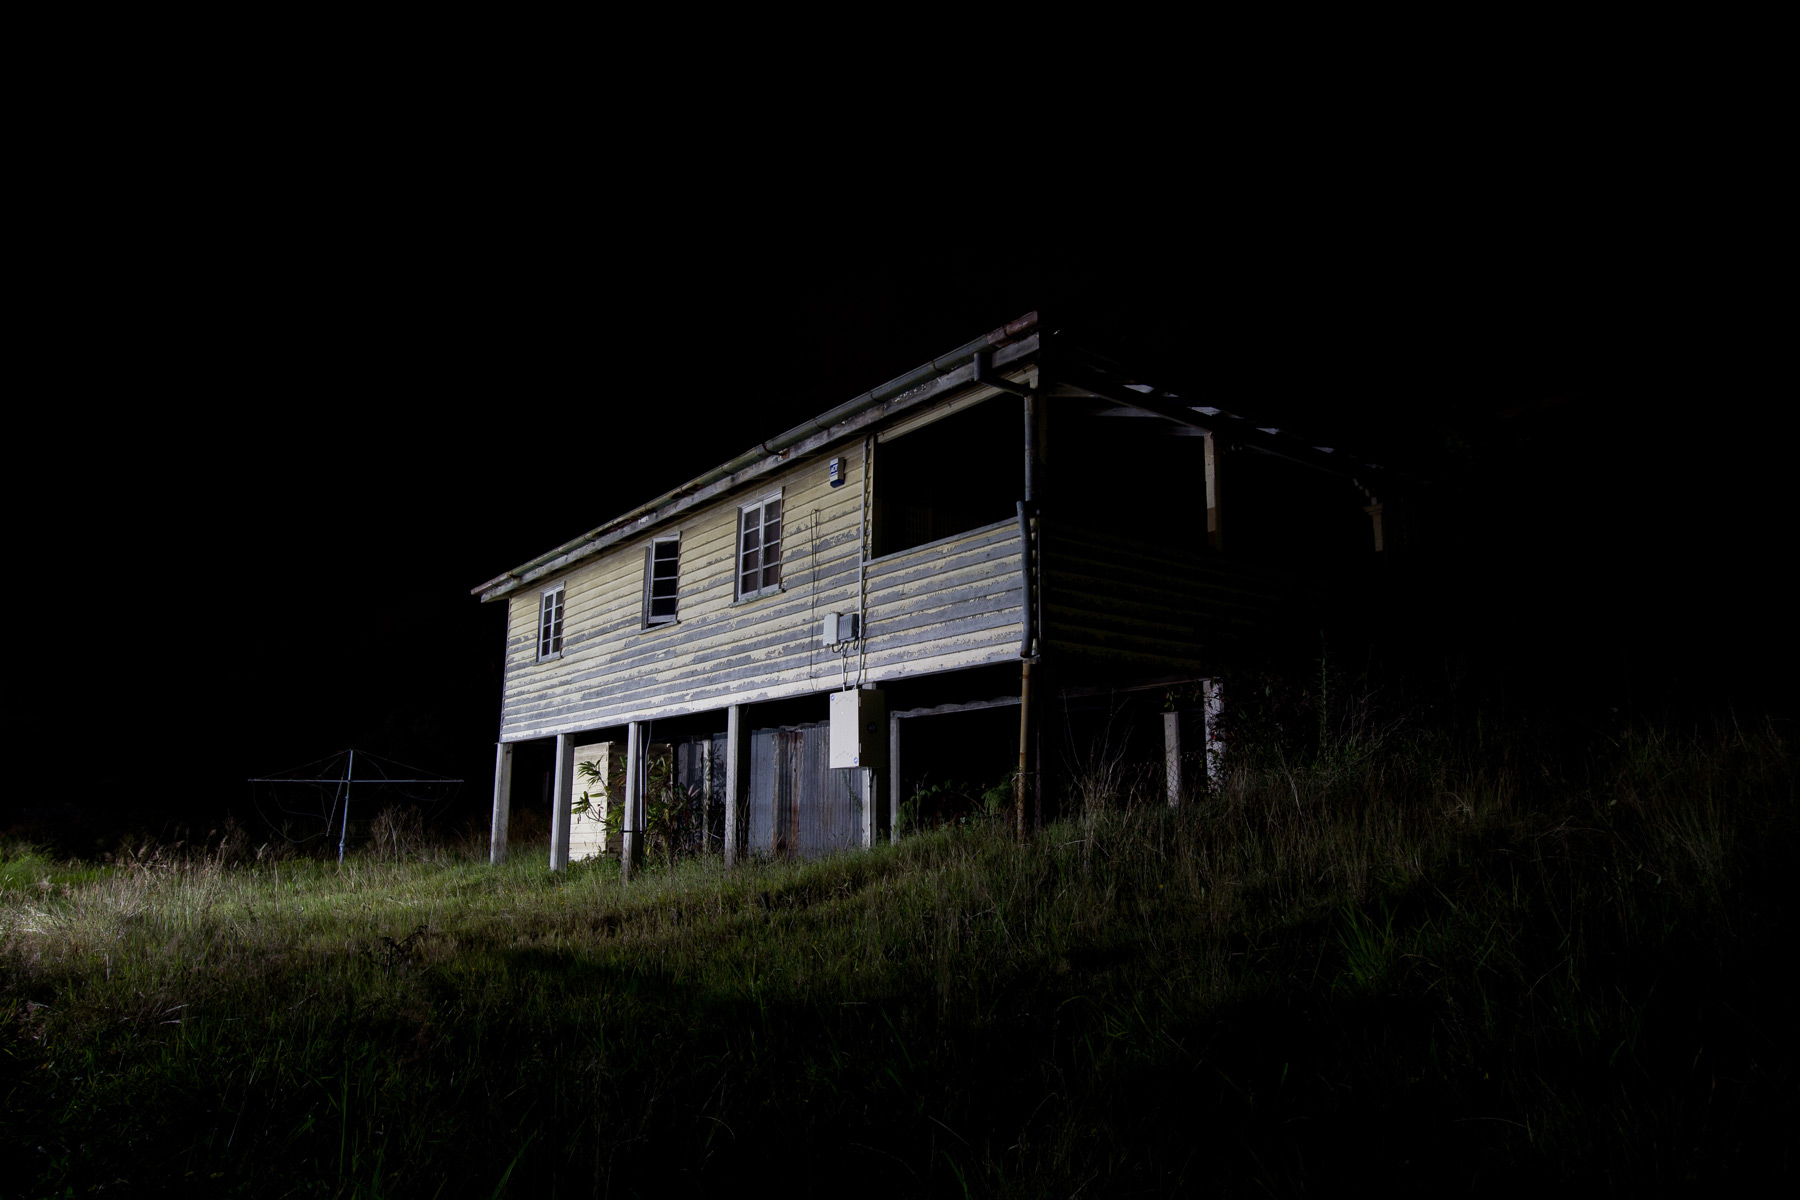 Light hitting the side of an abandoned house at night